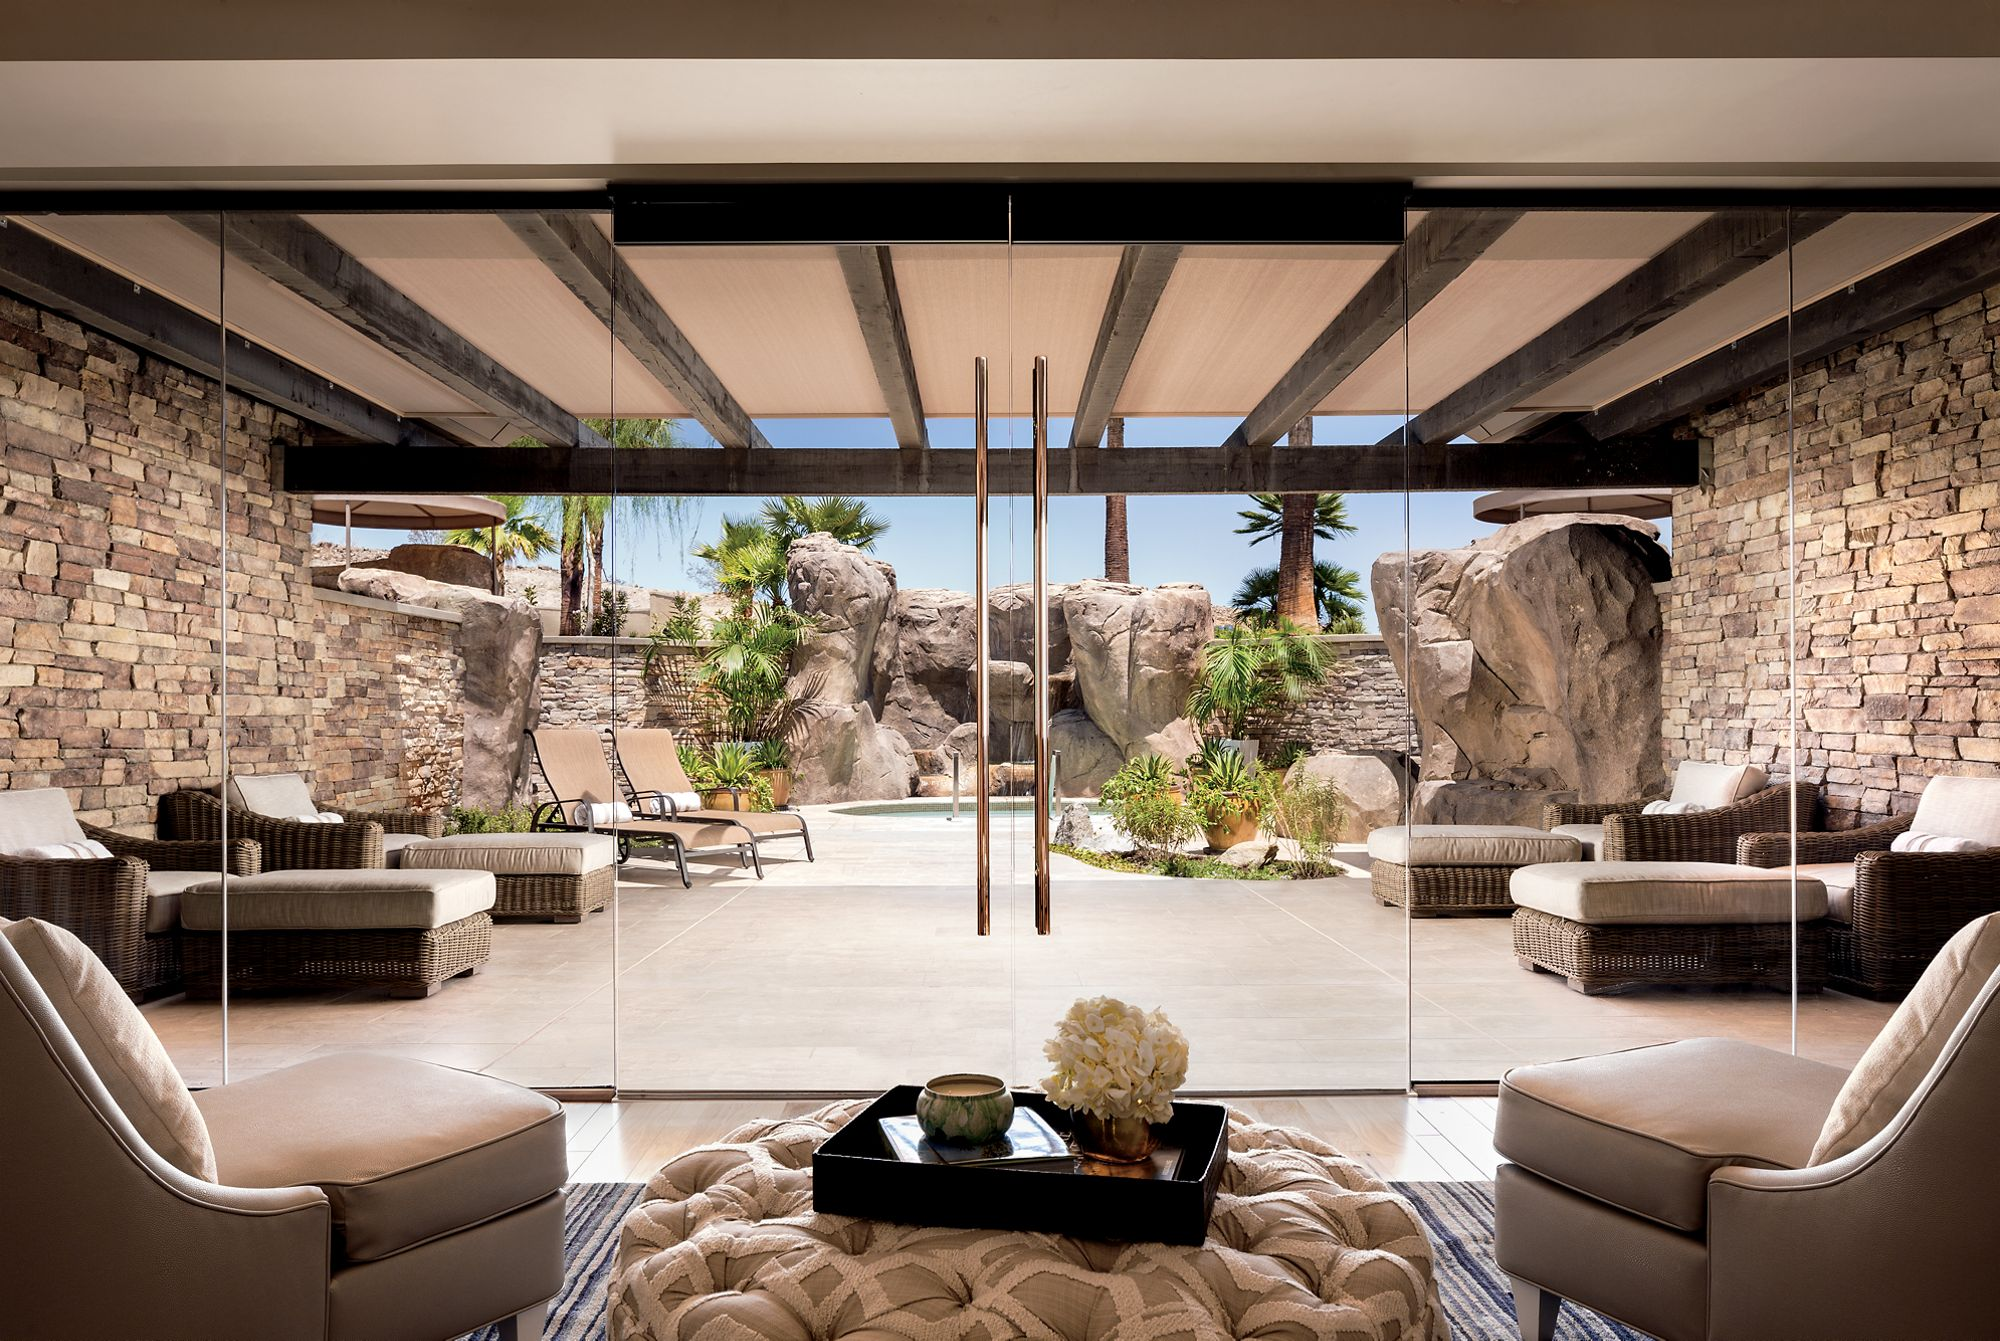 Ritz-Carlton Rancho Mirage